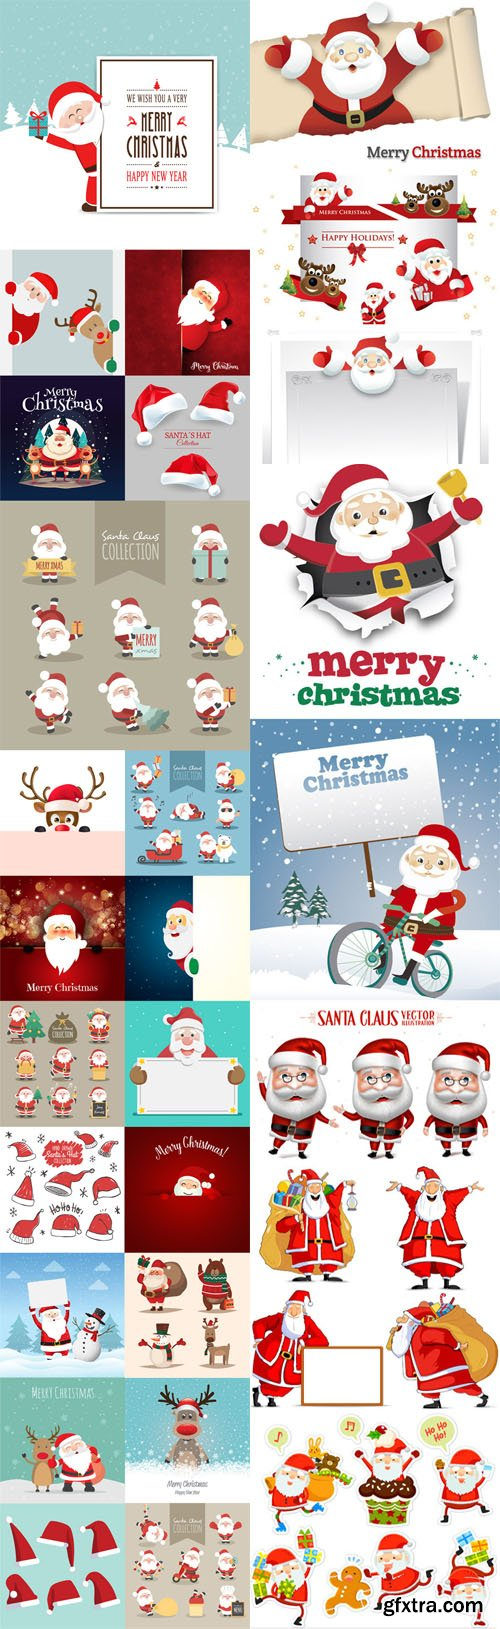 Santa Claus Characters Vector Collection 1